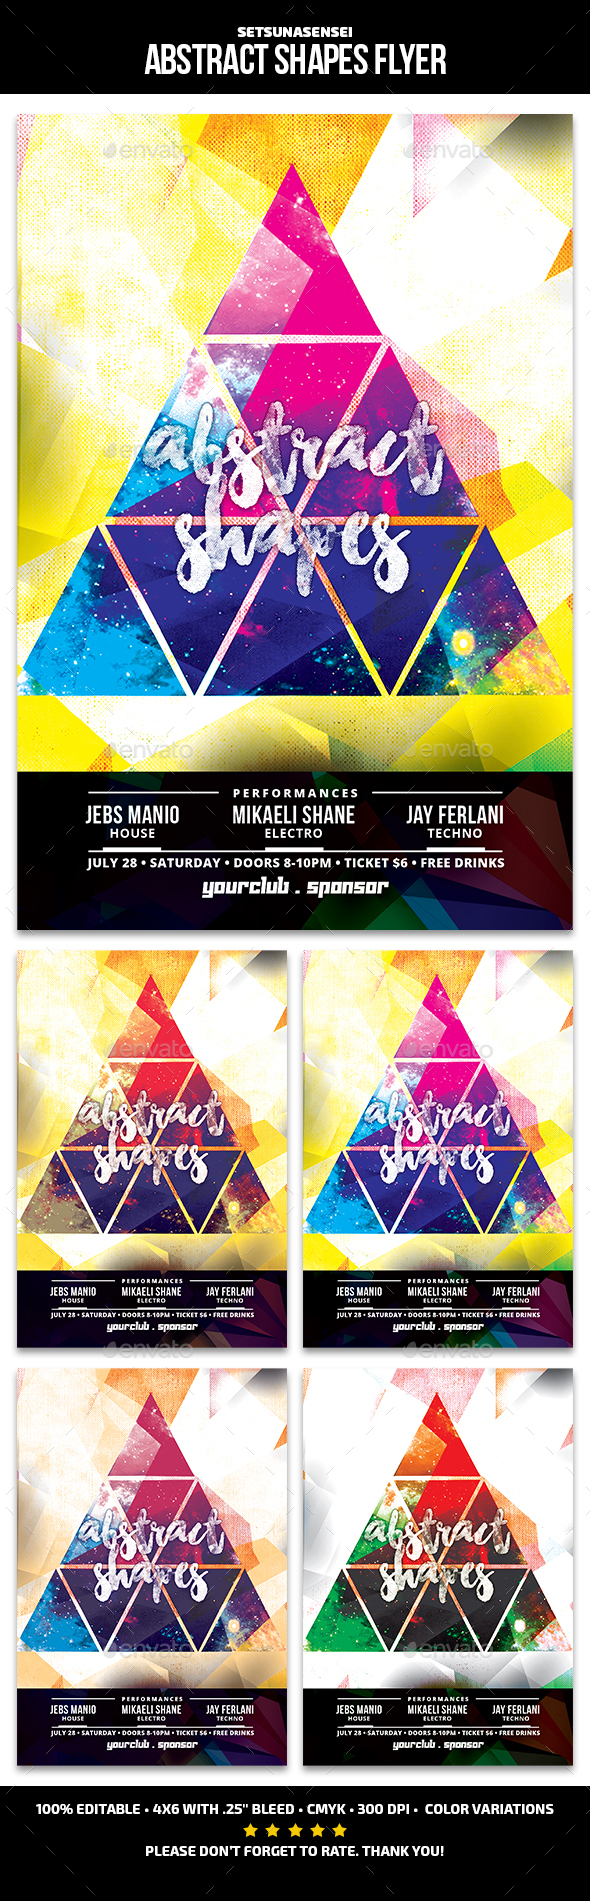 Abstract Shapes Flyer - Clubs & Parties Events